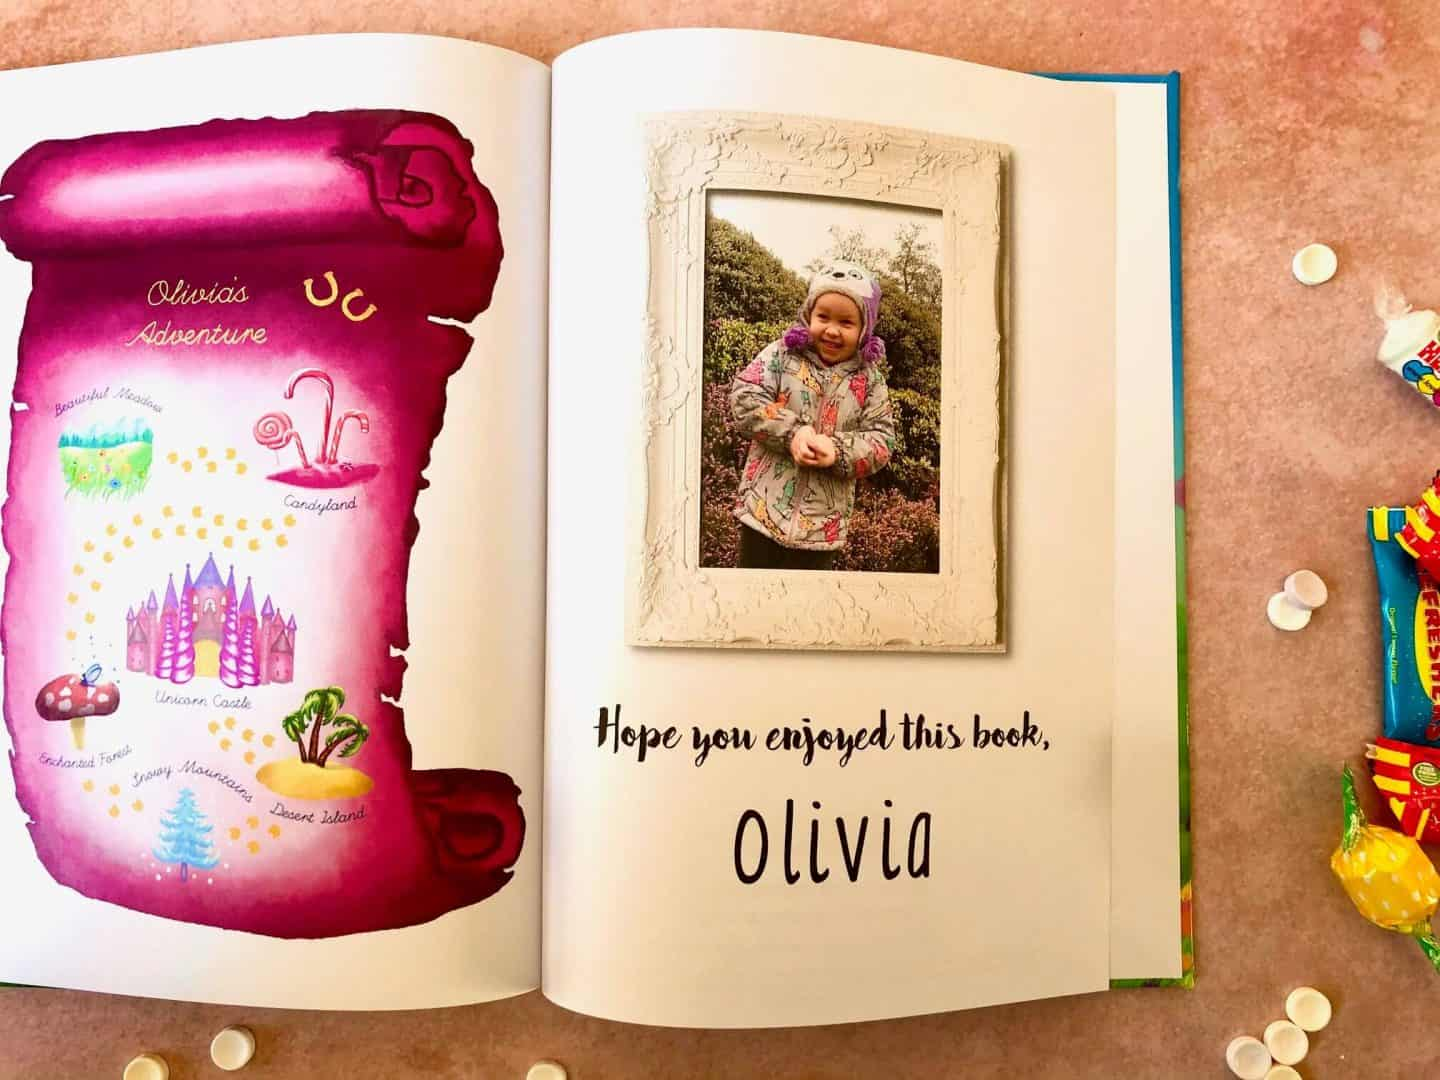 Olivia's Adventures in the Unicorn Book